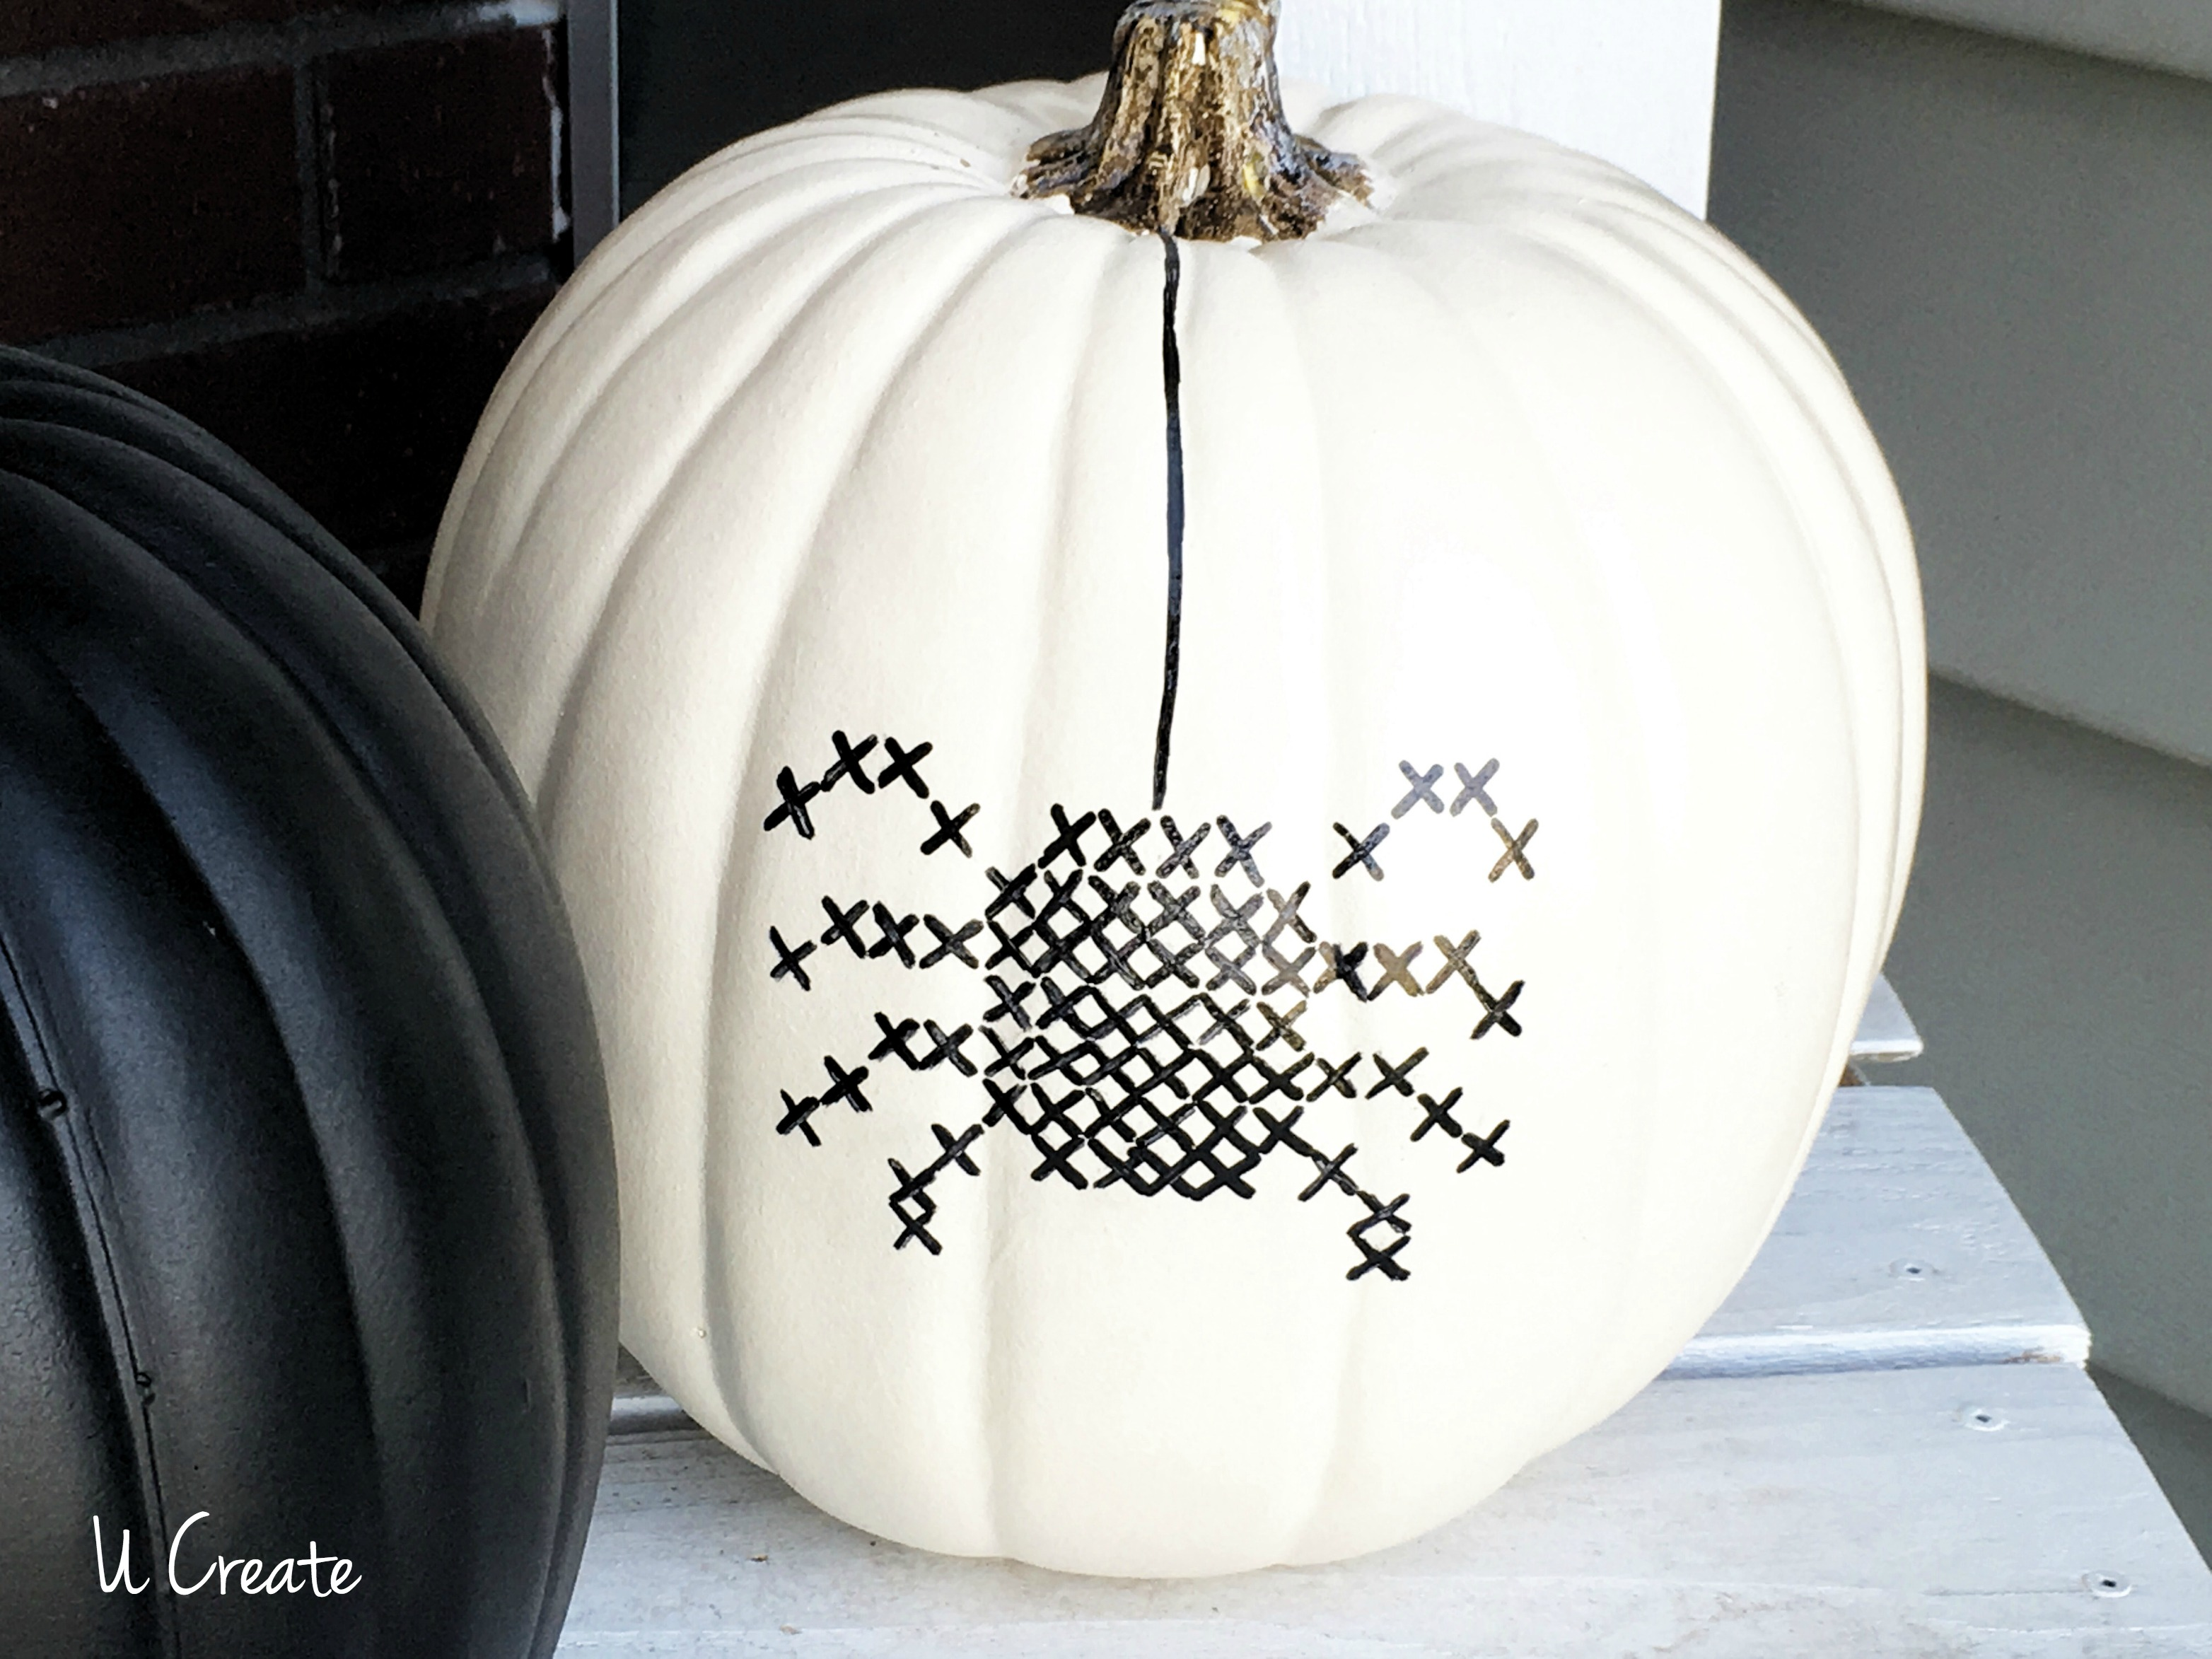 DIY Paint Stitched Pumpkins with free printable templates by U Create